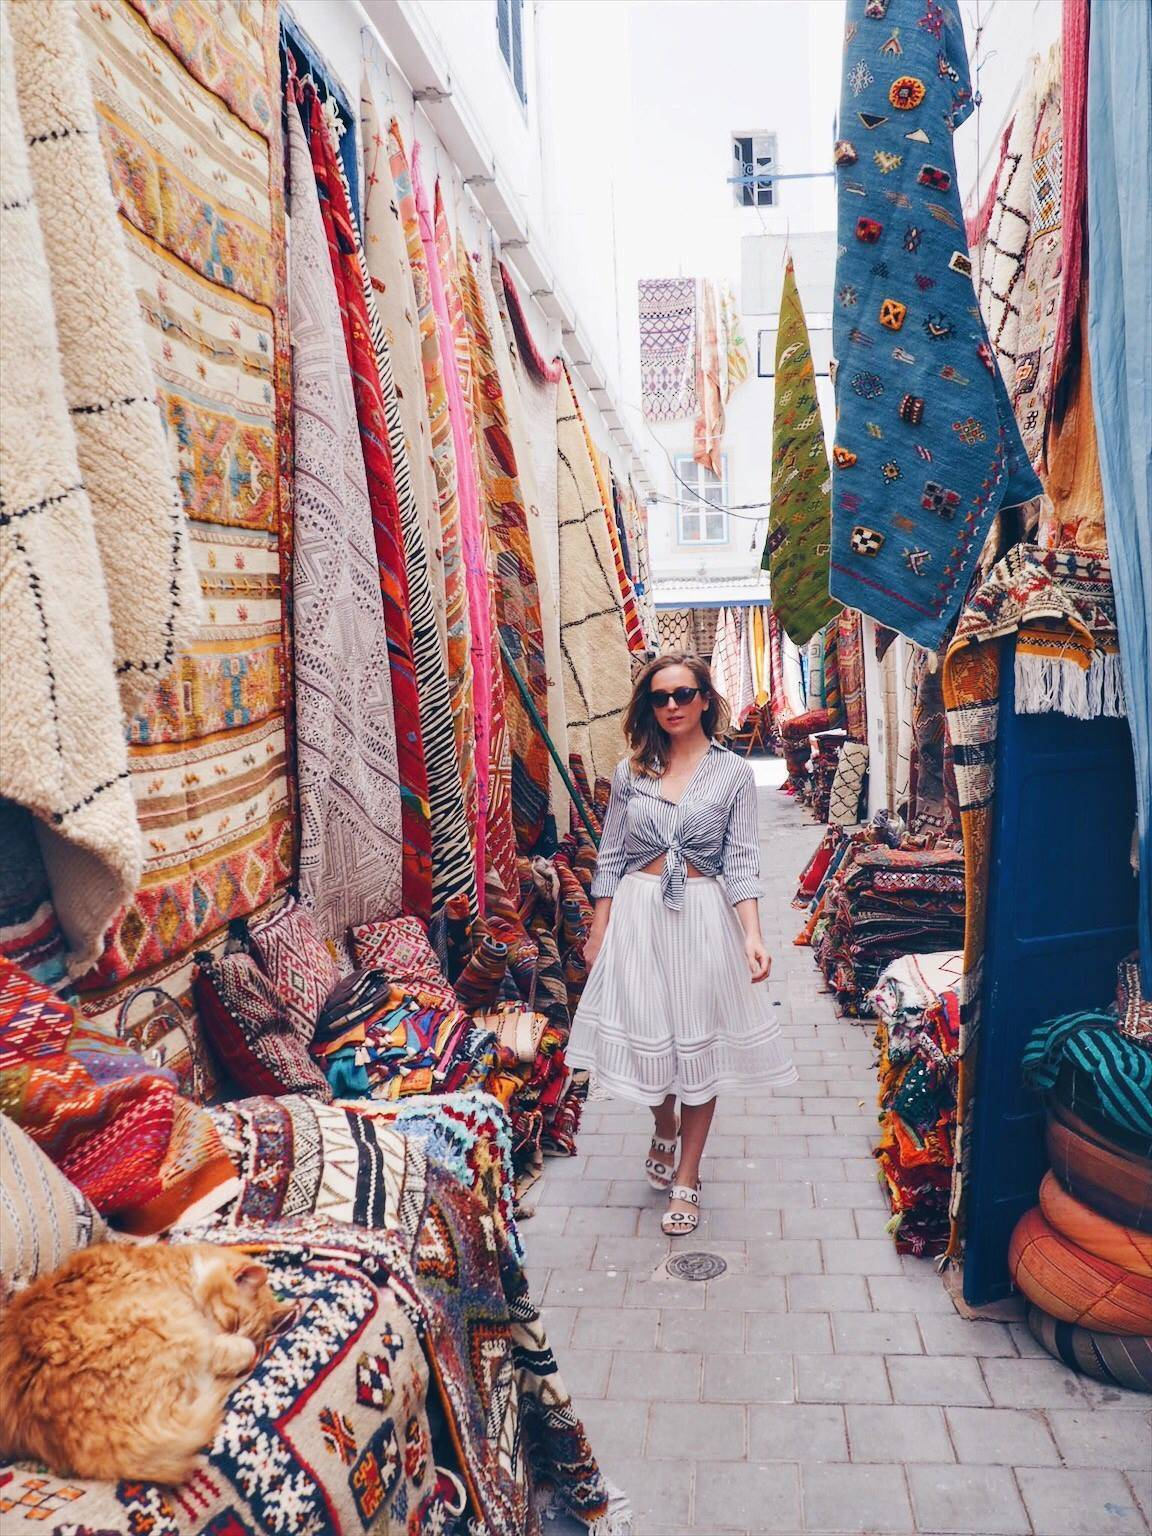 Marrakech solo female travel guide: staying safe, what to wear in Morocco